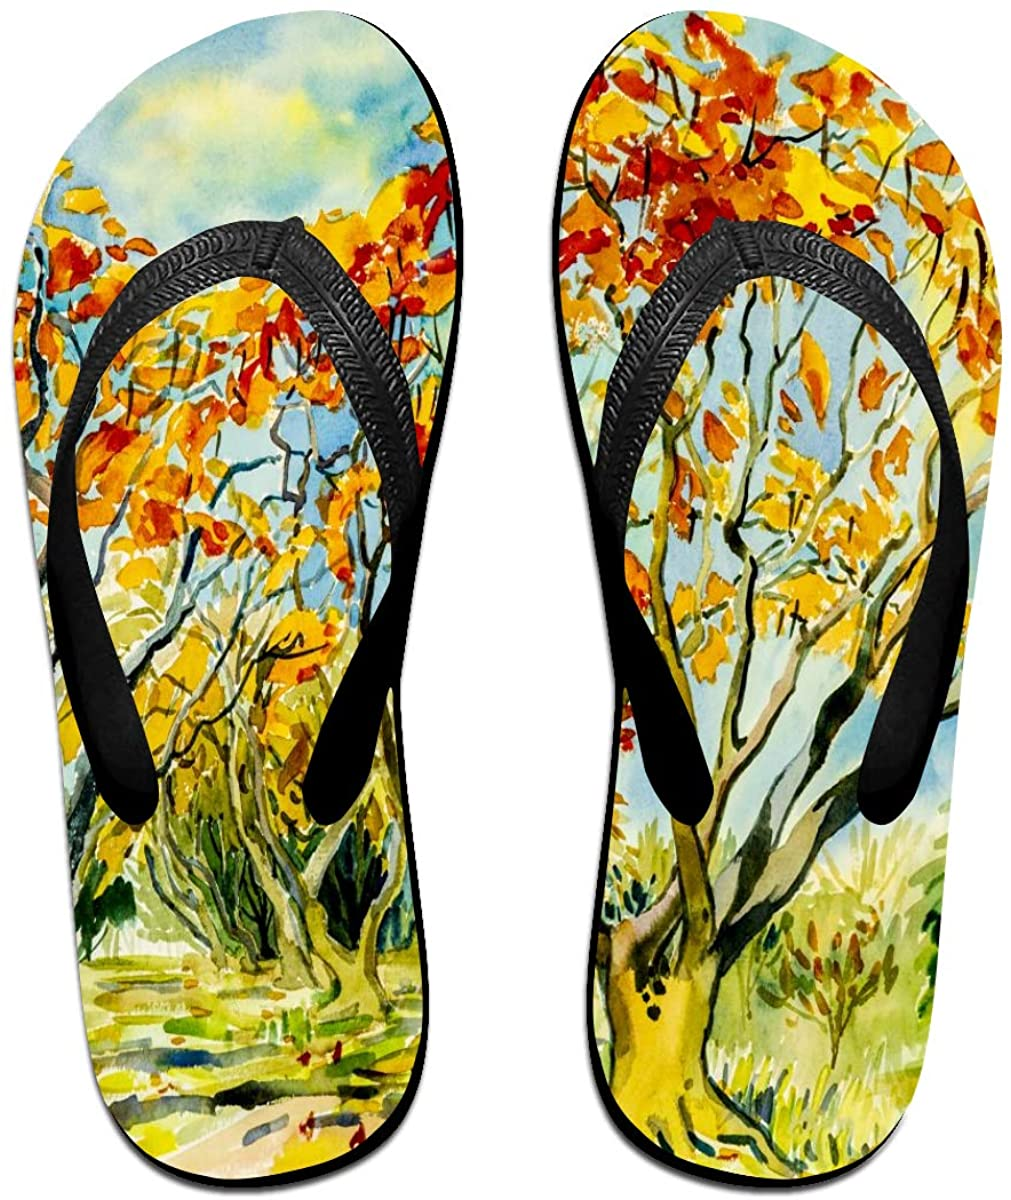 SLHFPX Mens Slippers Abstract Watercolor Landscape Paintin Comfy Cozy Flip Flop Rubber House Outdoor Sandals